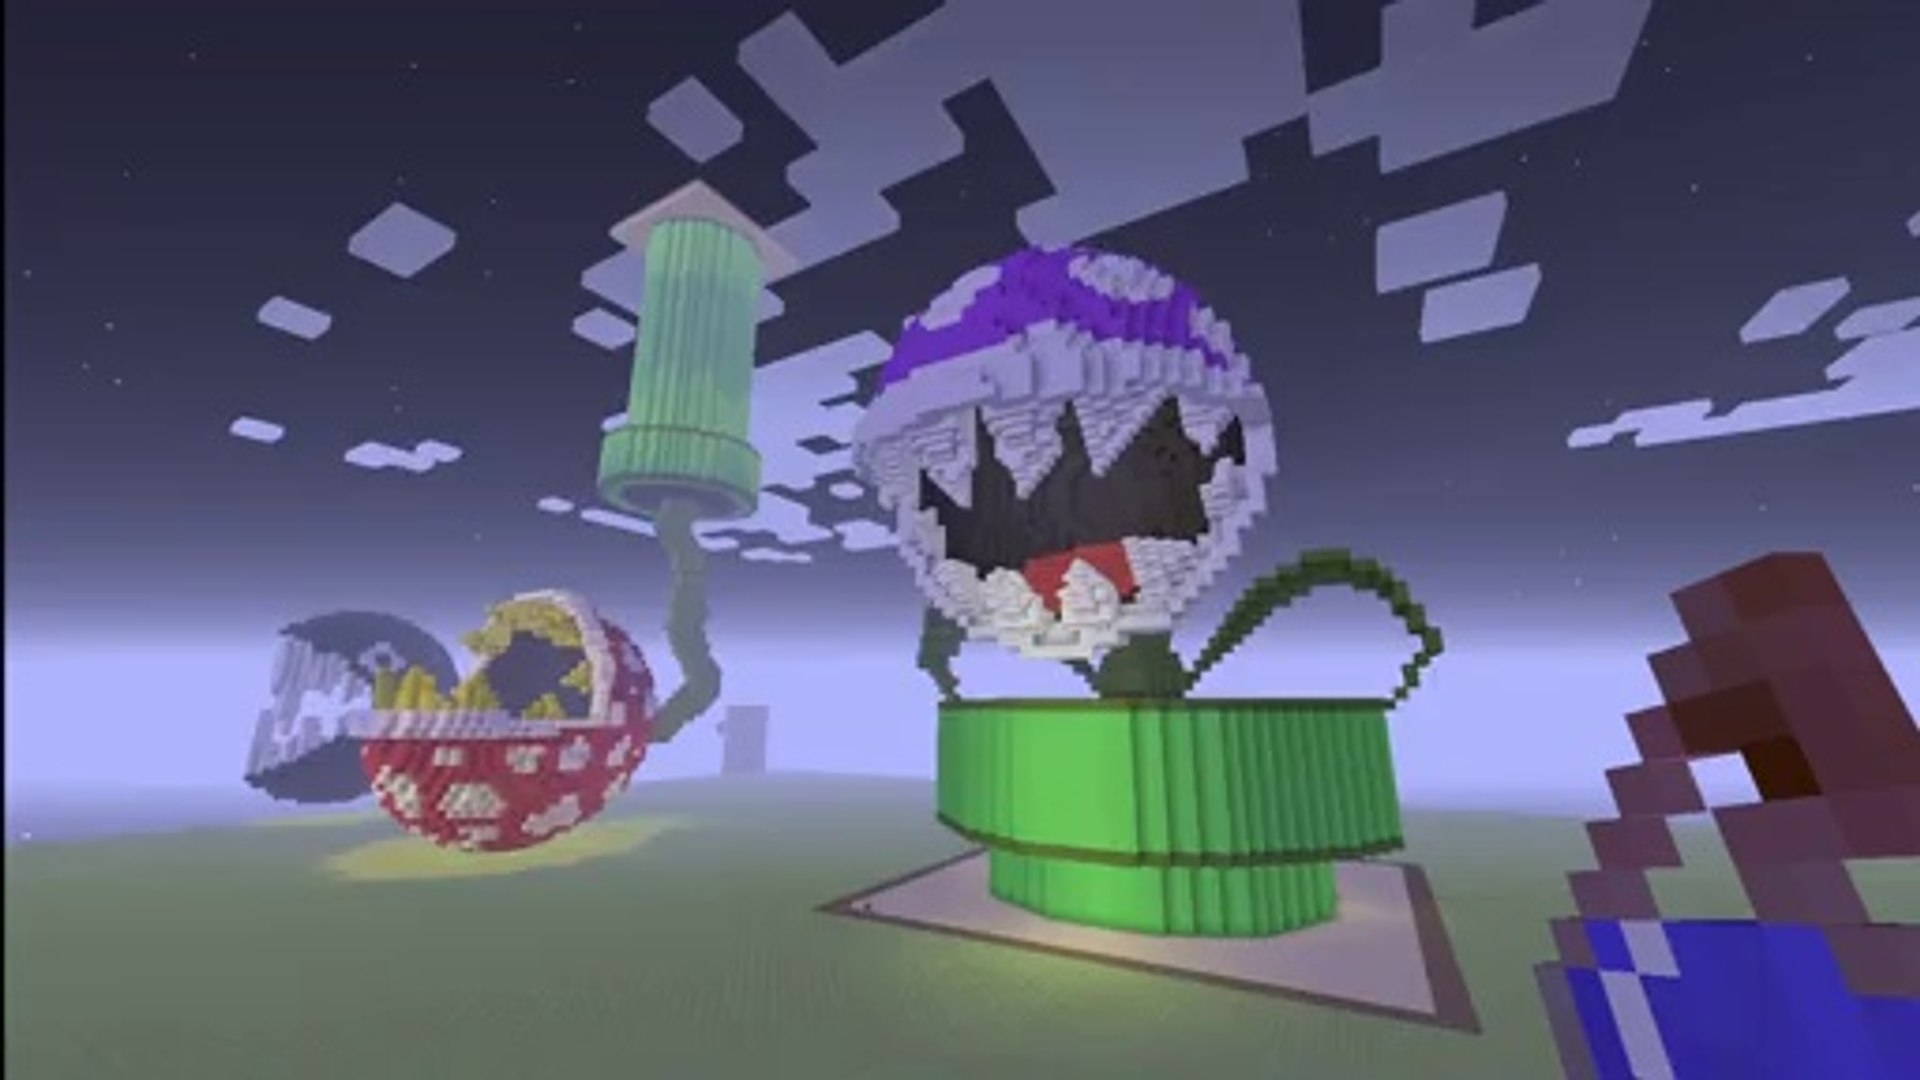 Dorick Minecraft 3d Pixel Art Purple Piranha Plant Statue From Super Mario World Nintendo